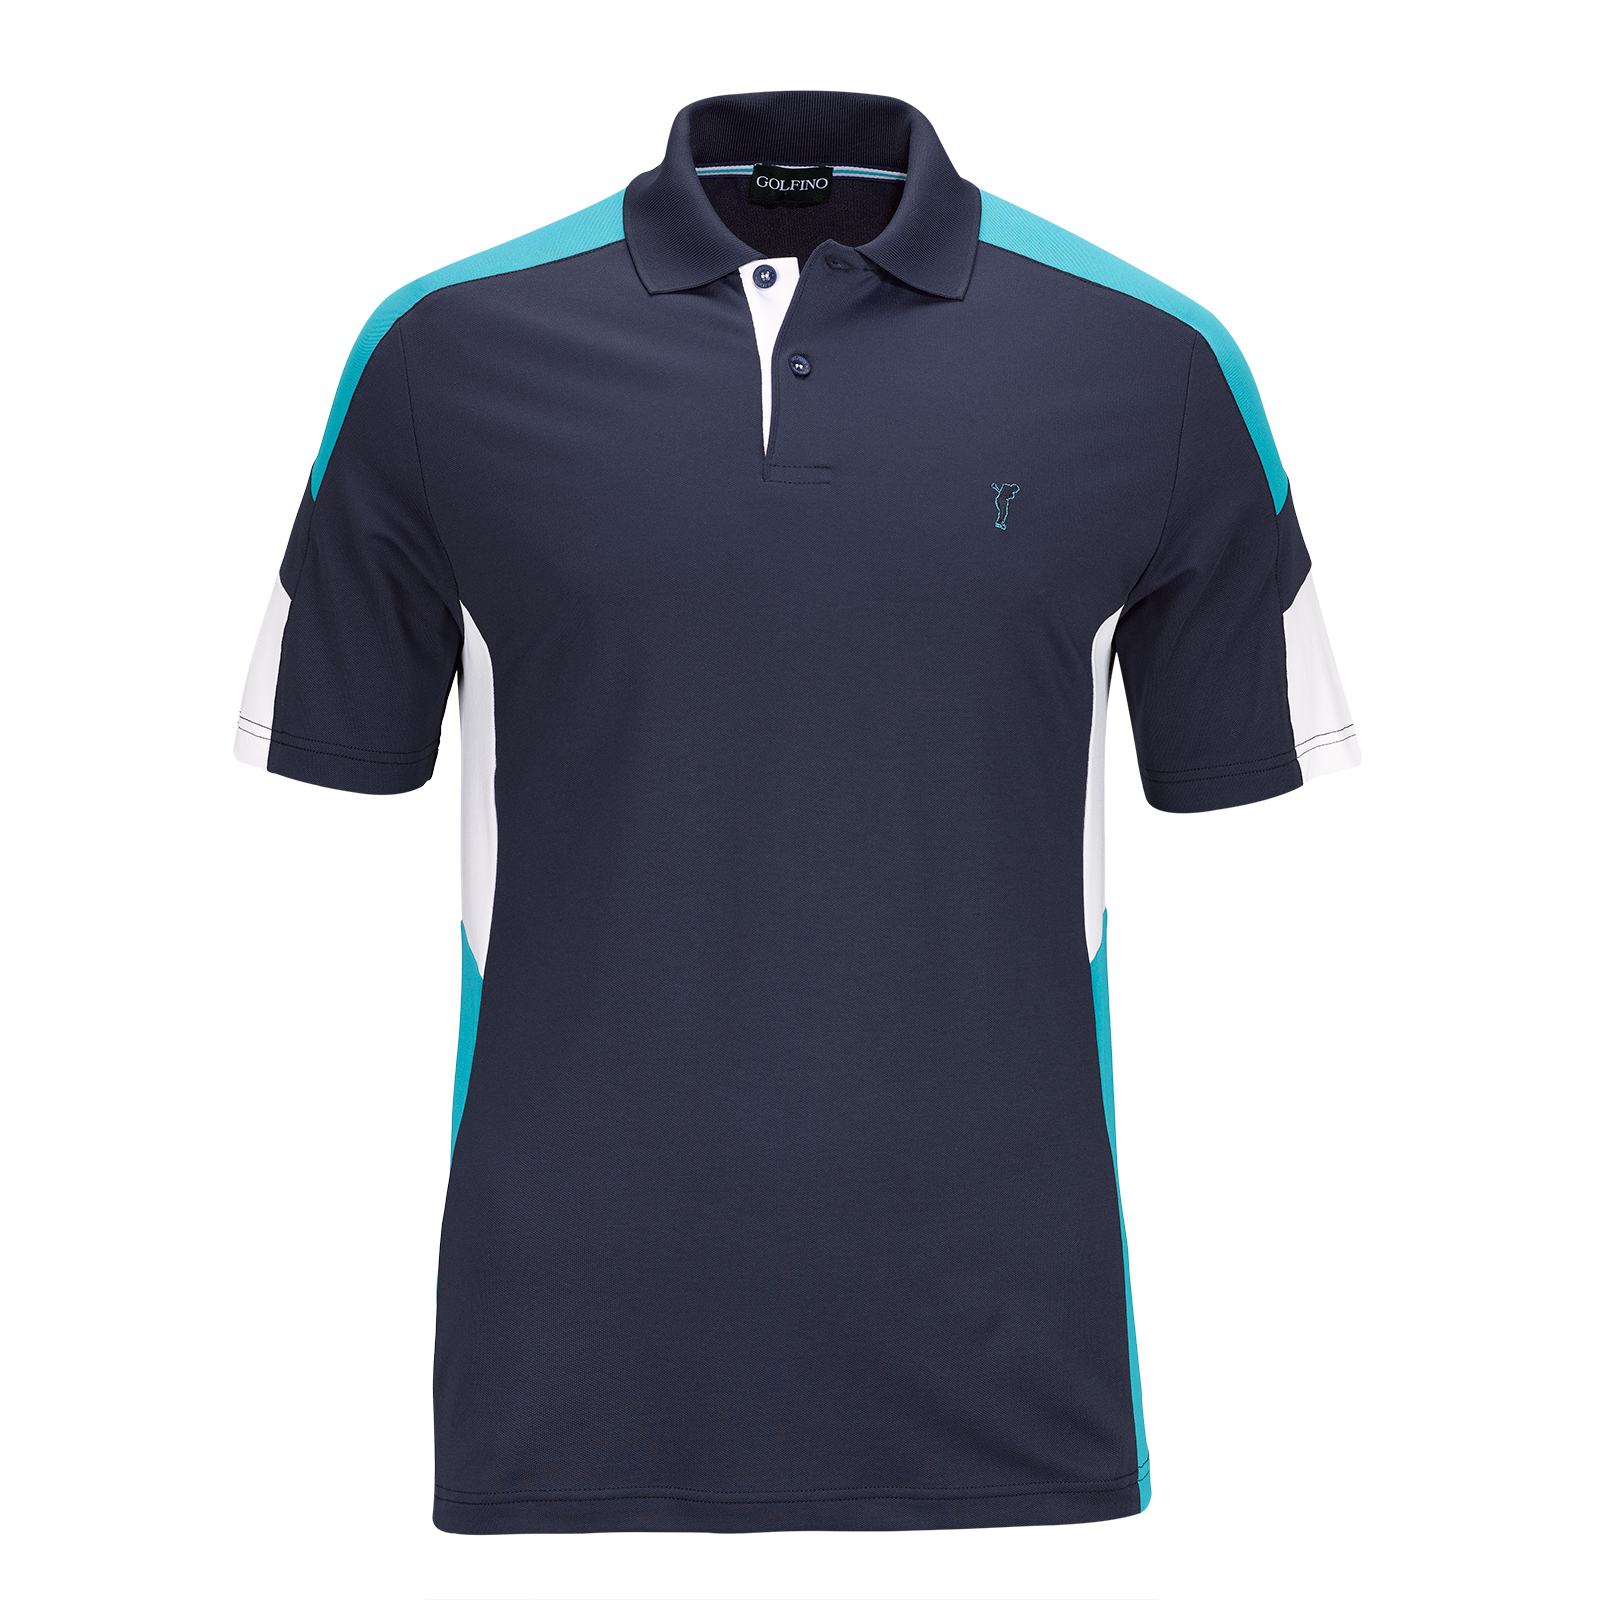 Men's sun protection functional short sleeve golf polo in Pro-Look